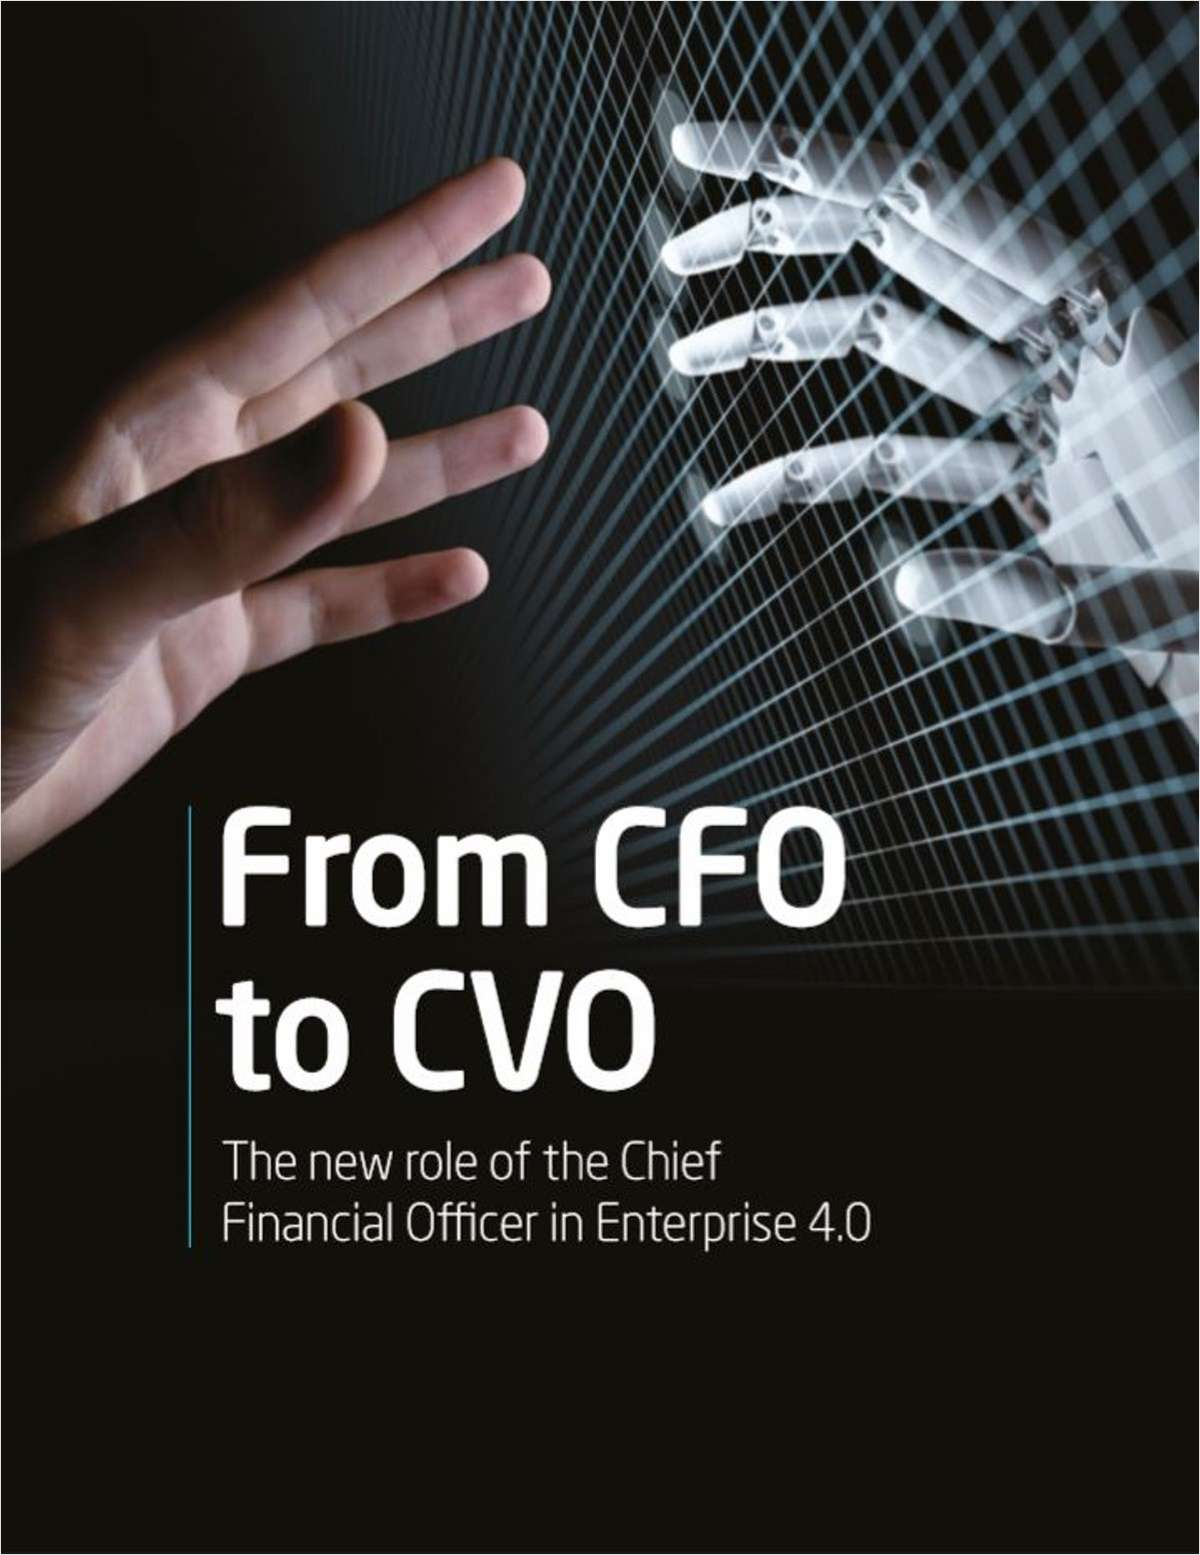 The New Role of the Chief Financial Officer in Enterprise 4.0